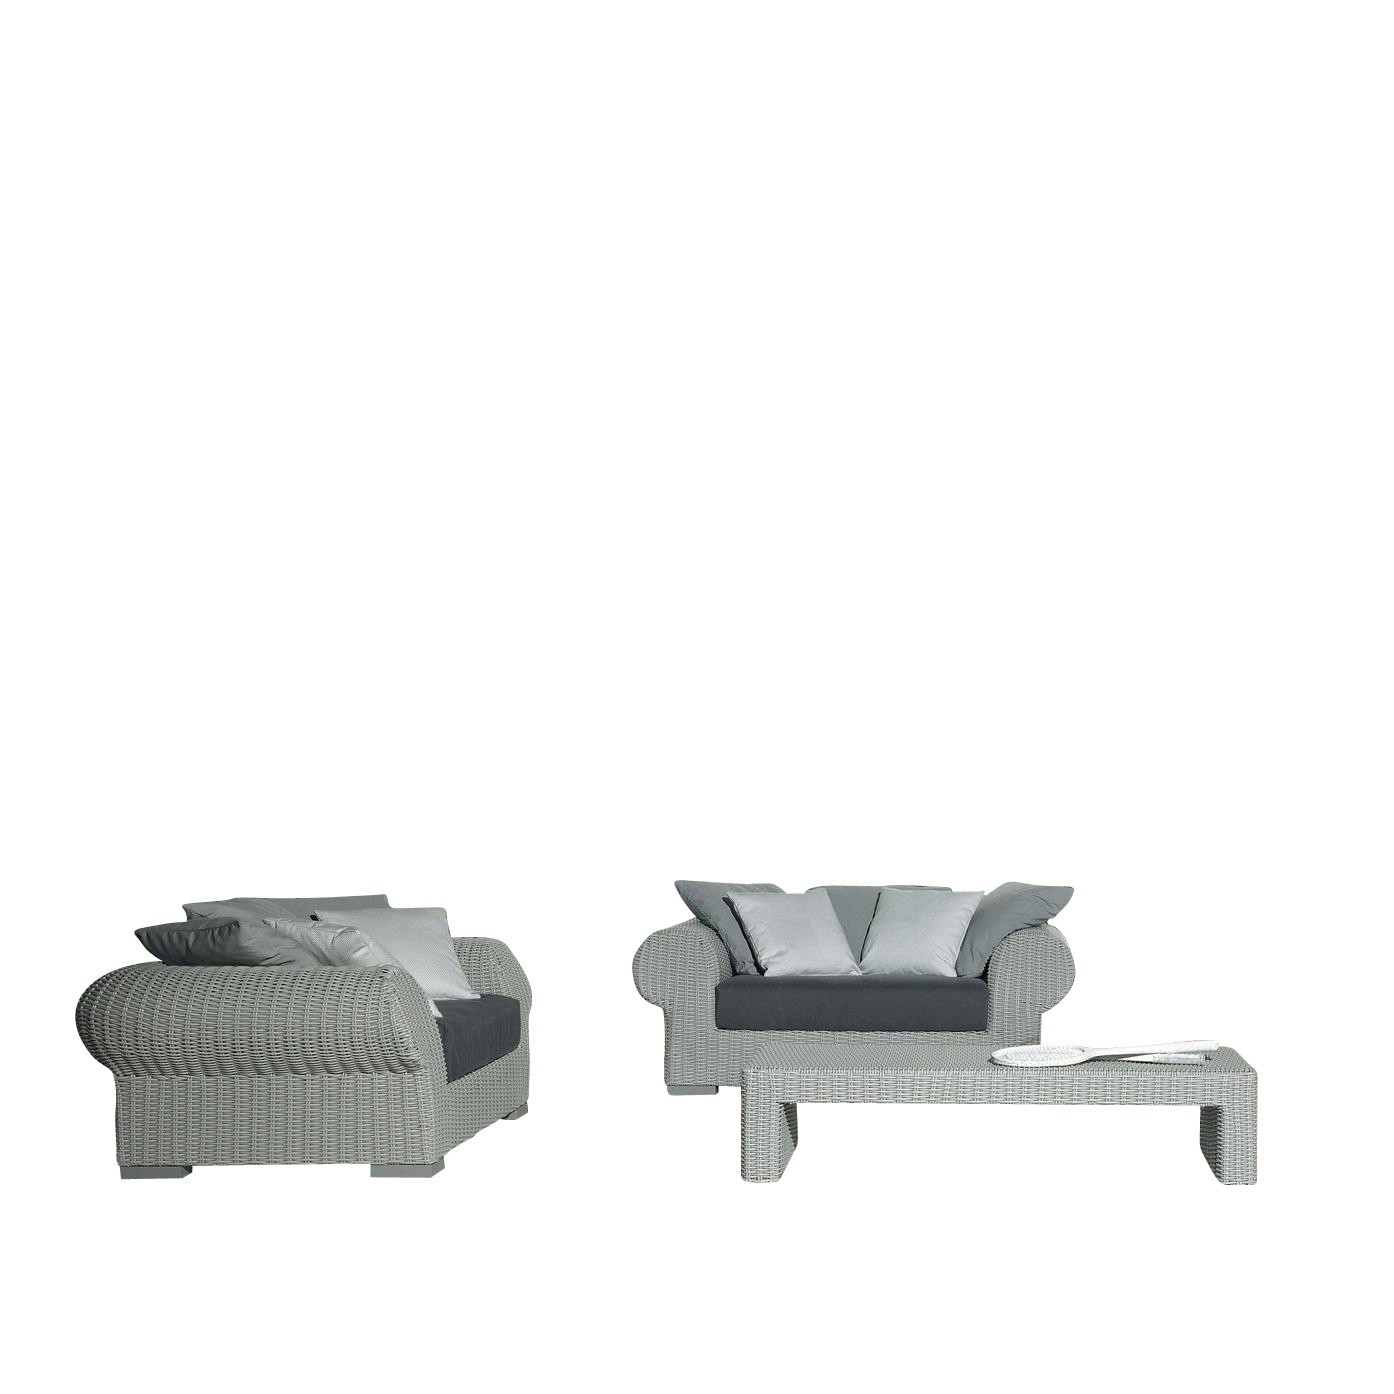 Outdoor Sofa Rattan Inout 601 Poly Rattan Outdoor Sofa